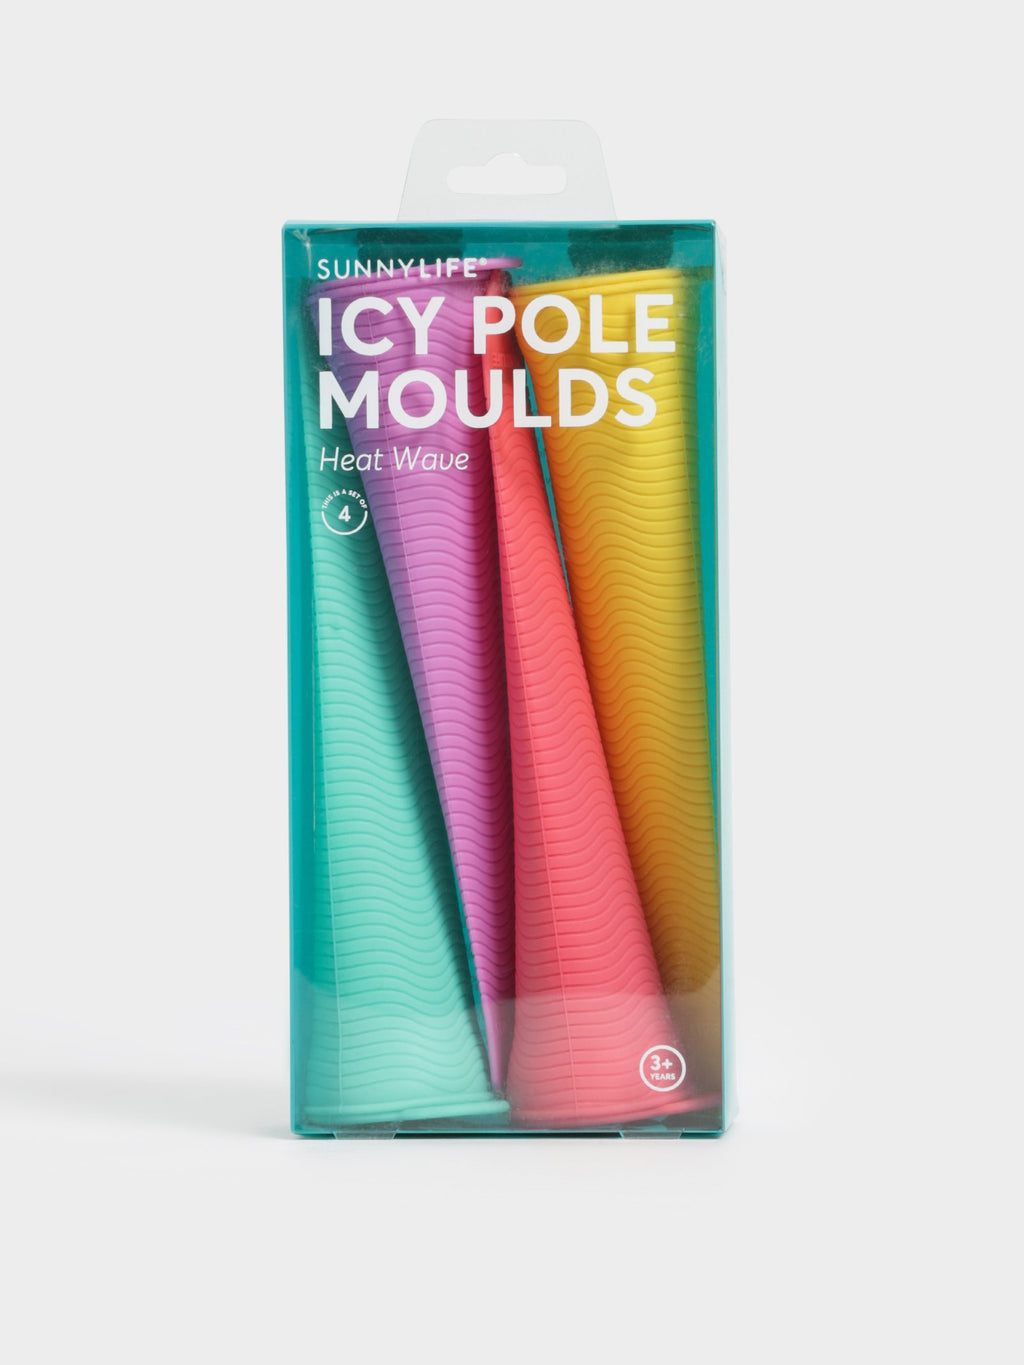 SunnyLife Icy Pole Moulds - Heat Wave